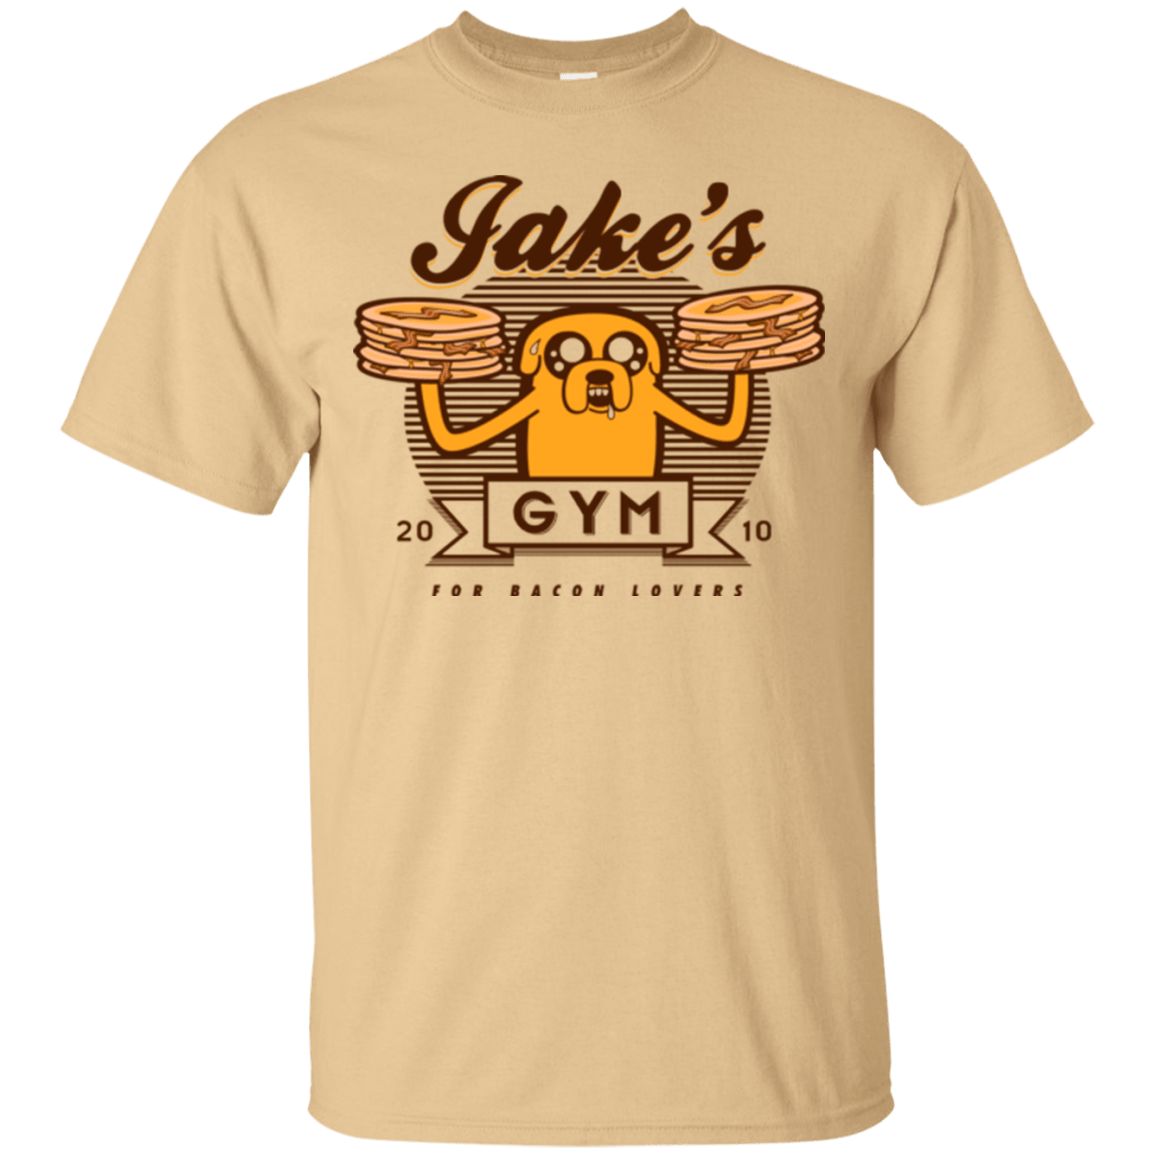 T-Shirts Vegas Gold / Small Bacon lovers gym T-Shirt